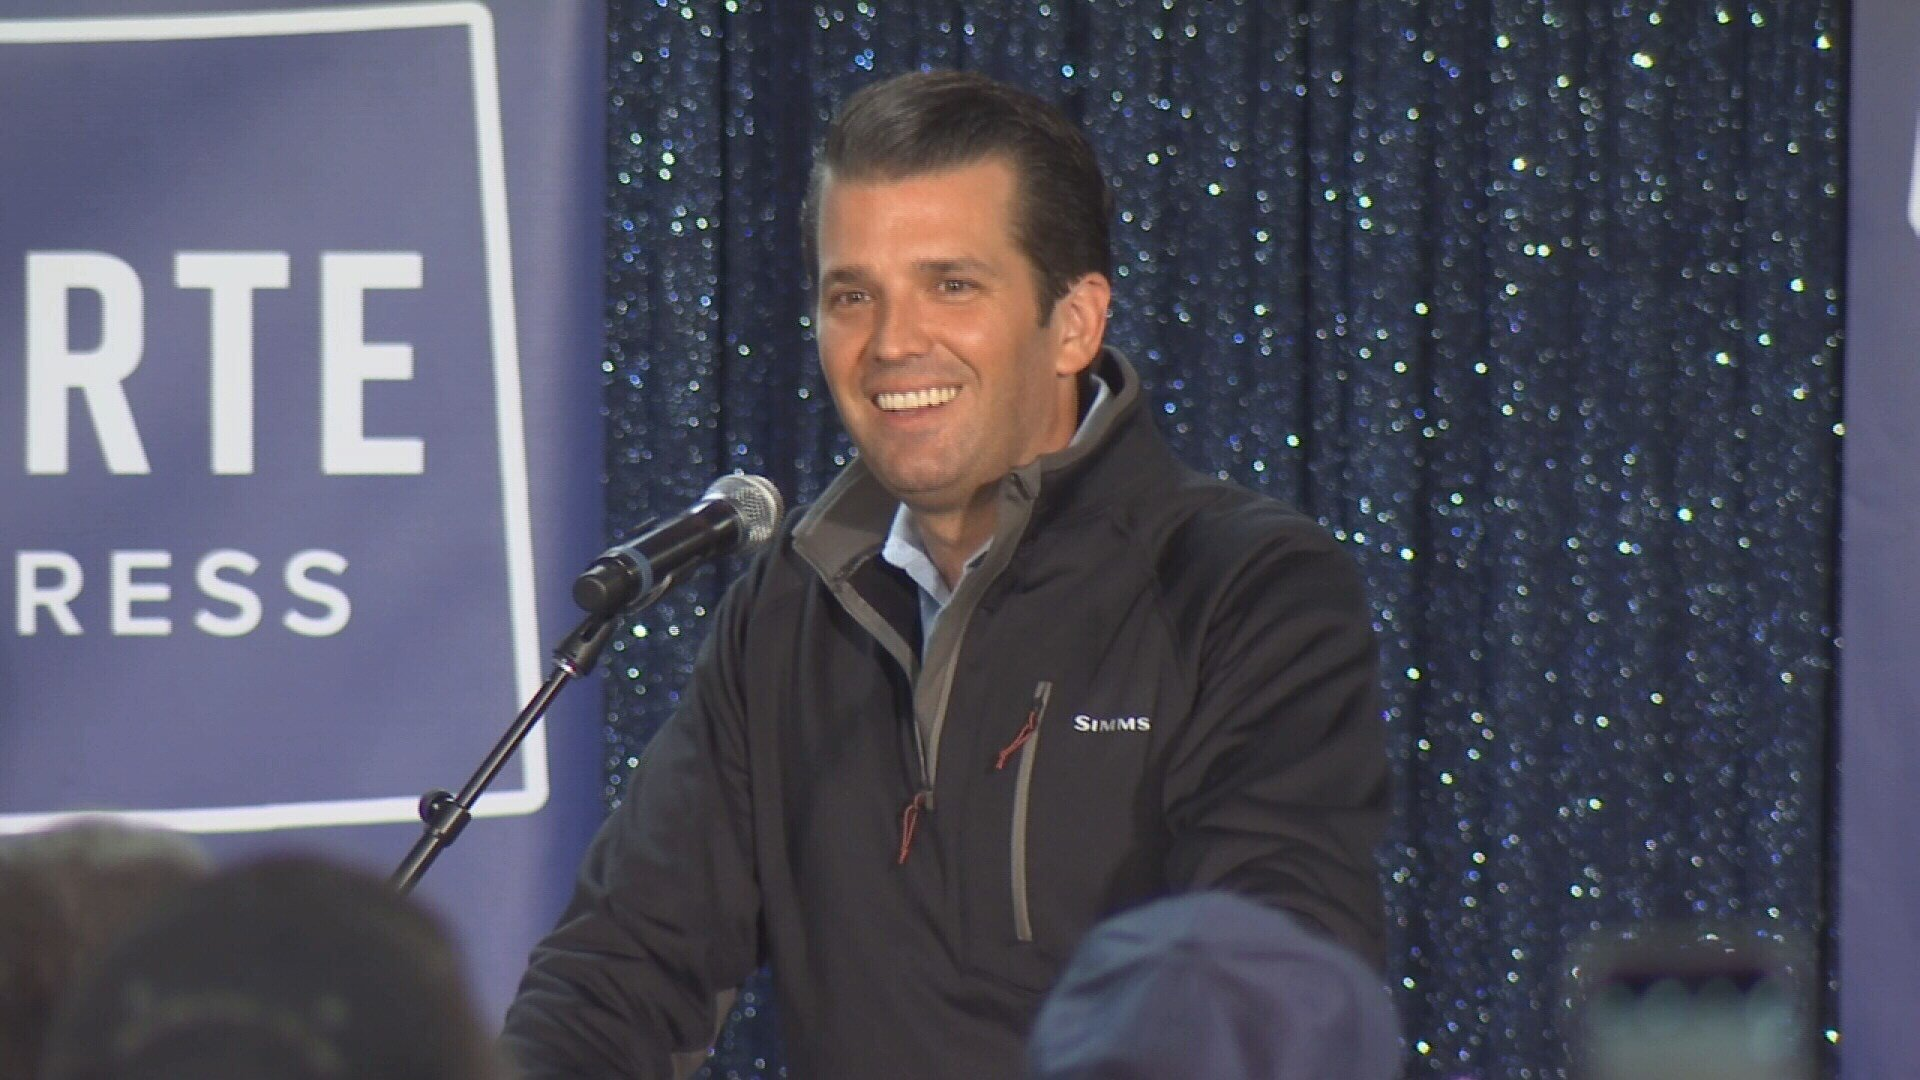 Donald Trump Jr., shown here at a rally in Montana, has agreed to testify before the Senate Judiciary Committee. (MTN News)